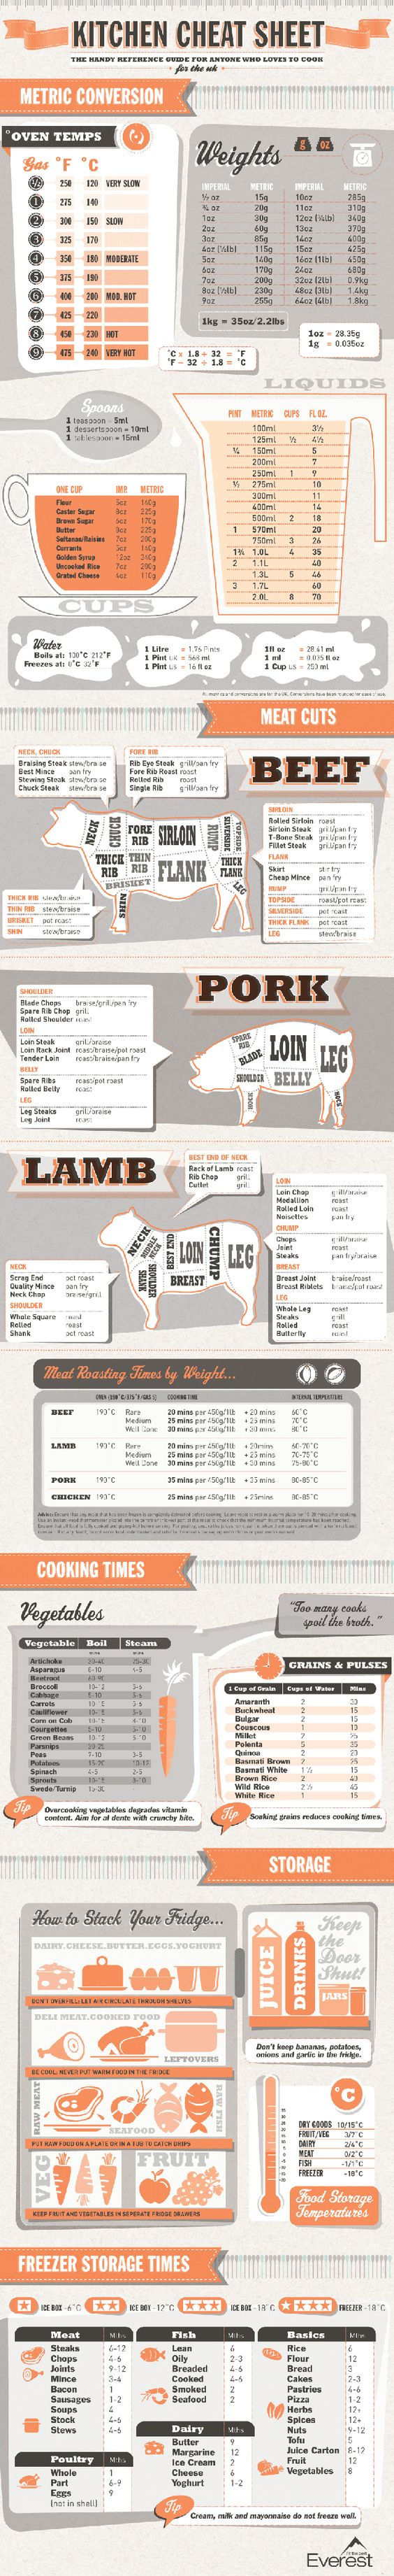 This Kitchen Cheat Sheet Has Weights, Measures, Cuts of Meat, and More